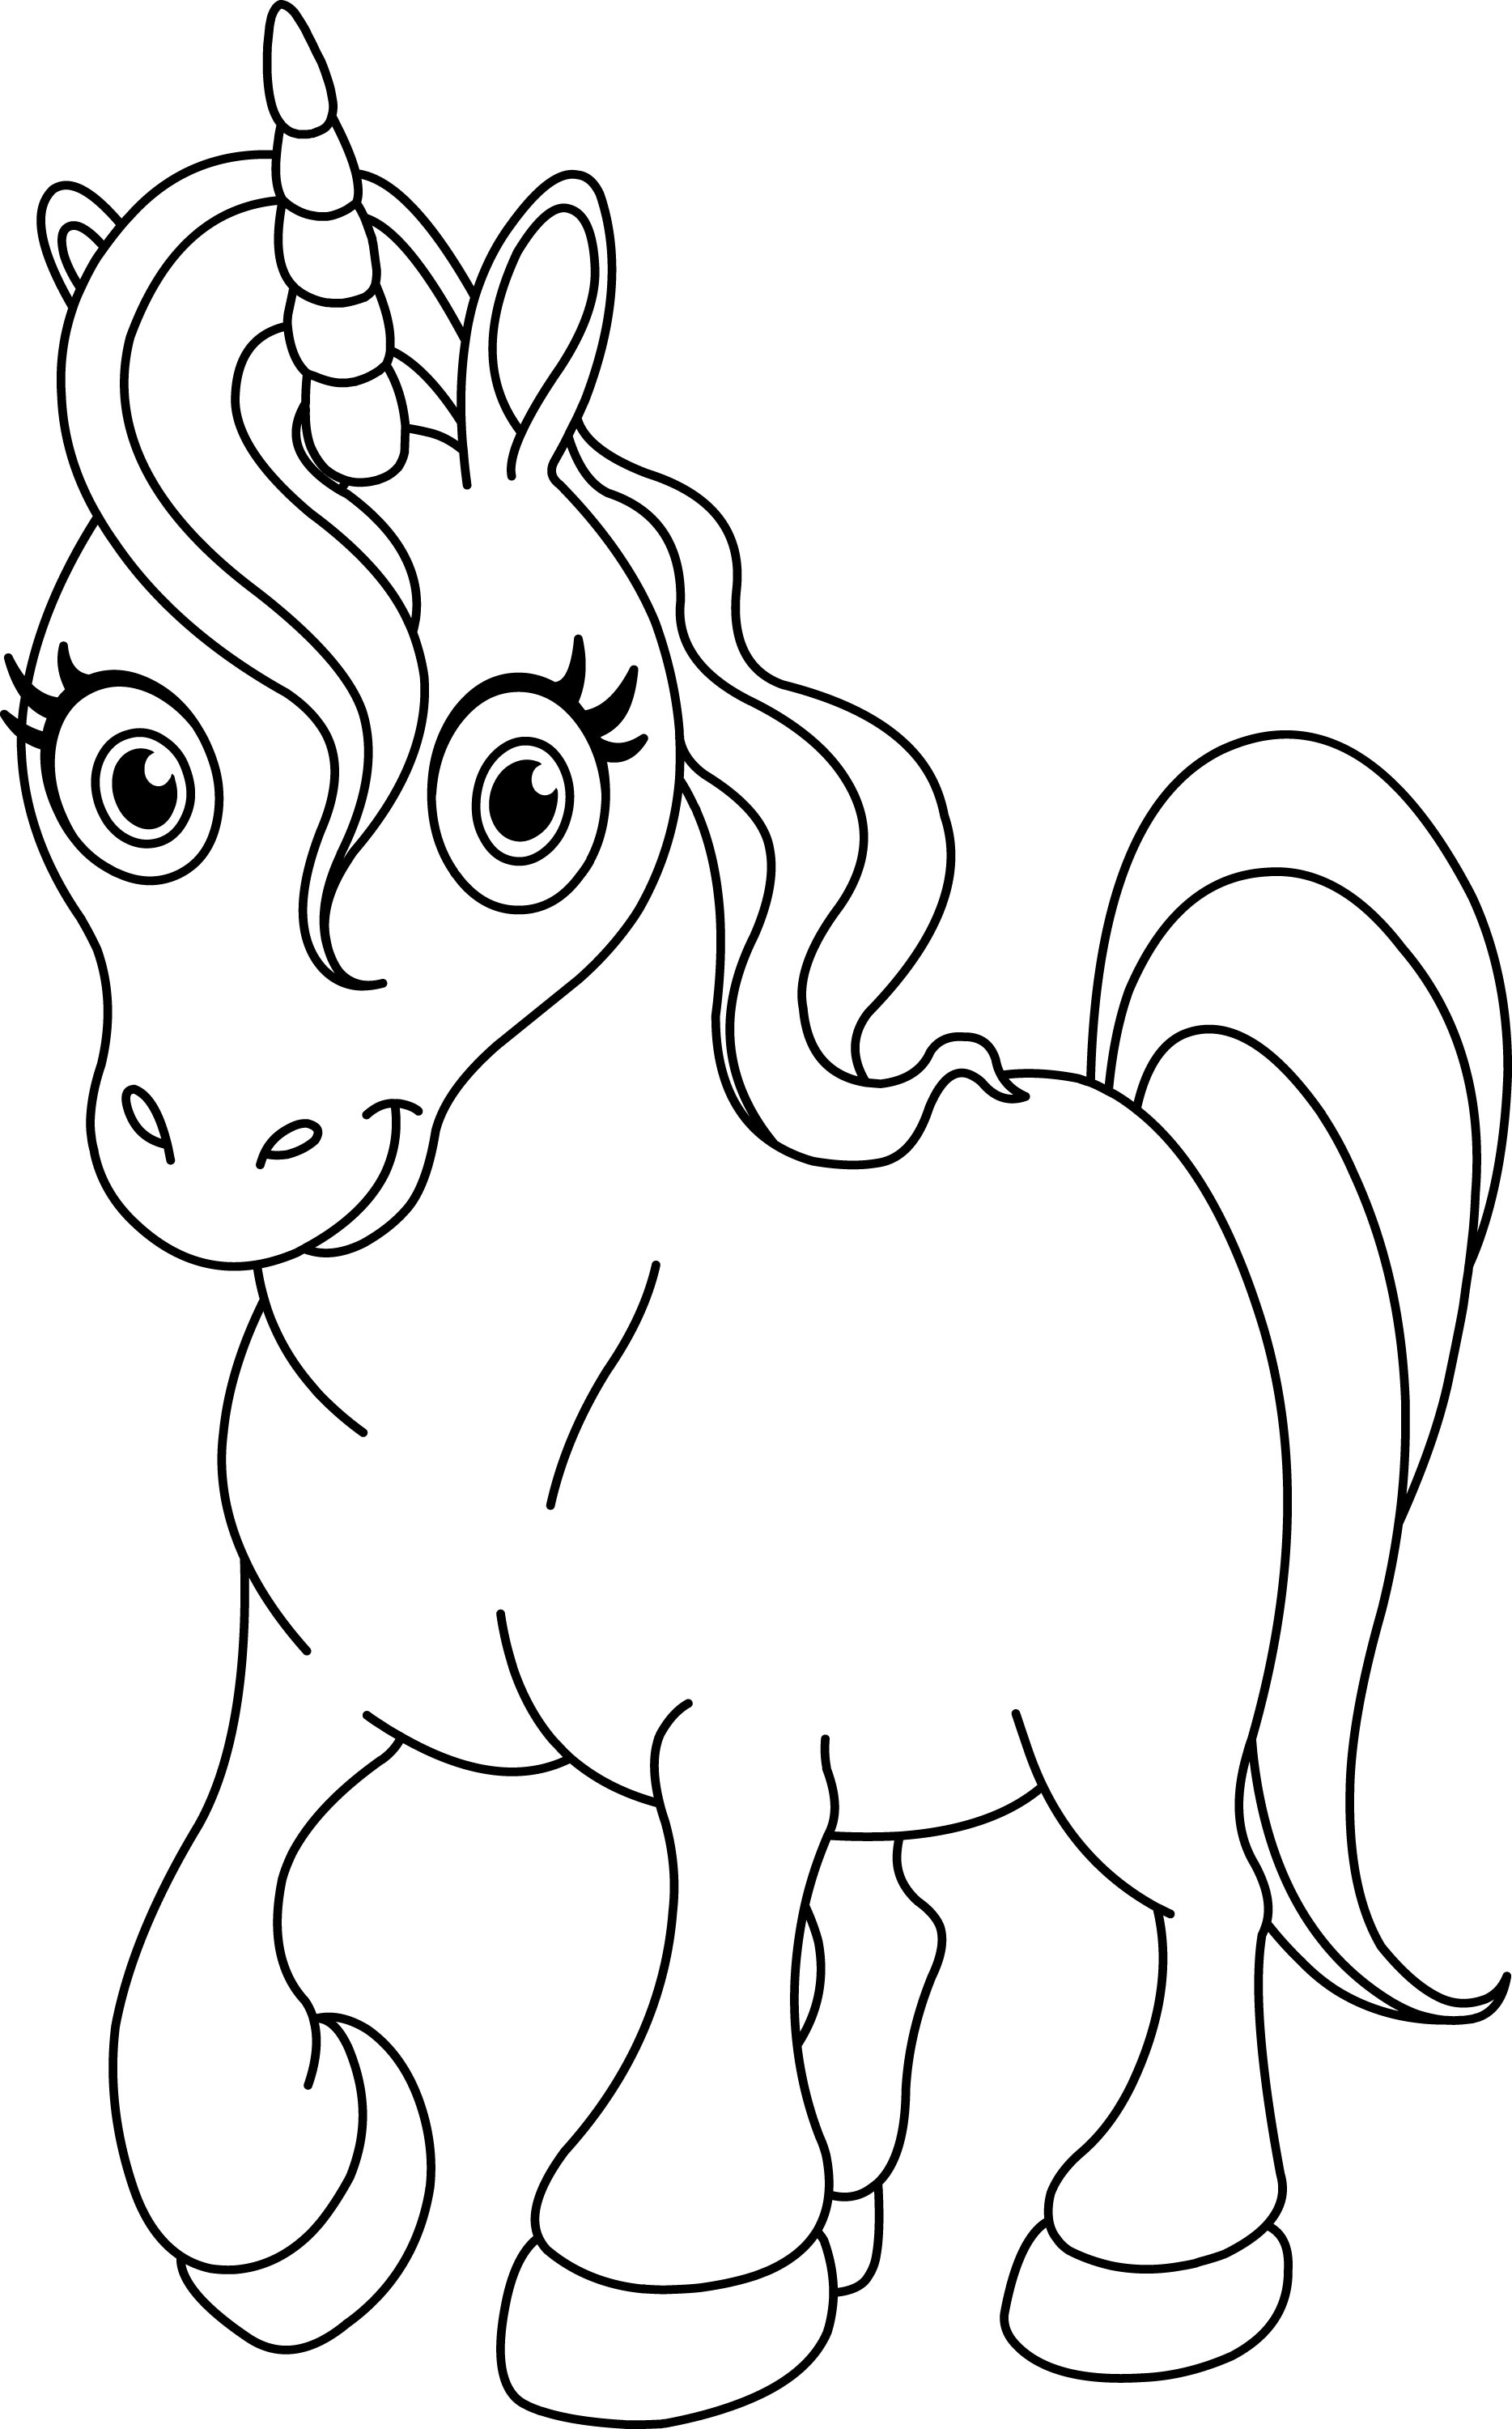 coloring worksheets unicorn a magical unicorn a coloring page taianomainen unicorn coloring worksheets